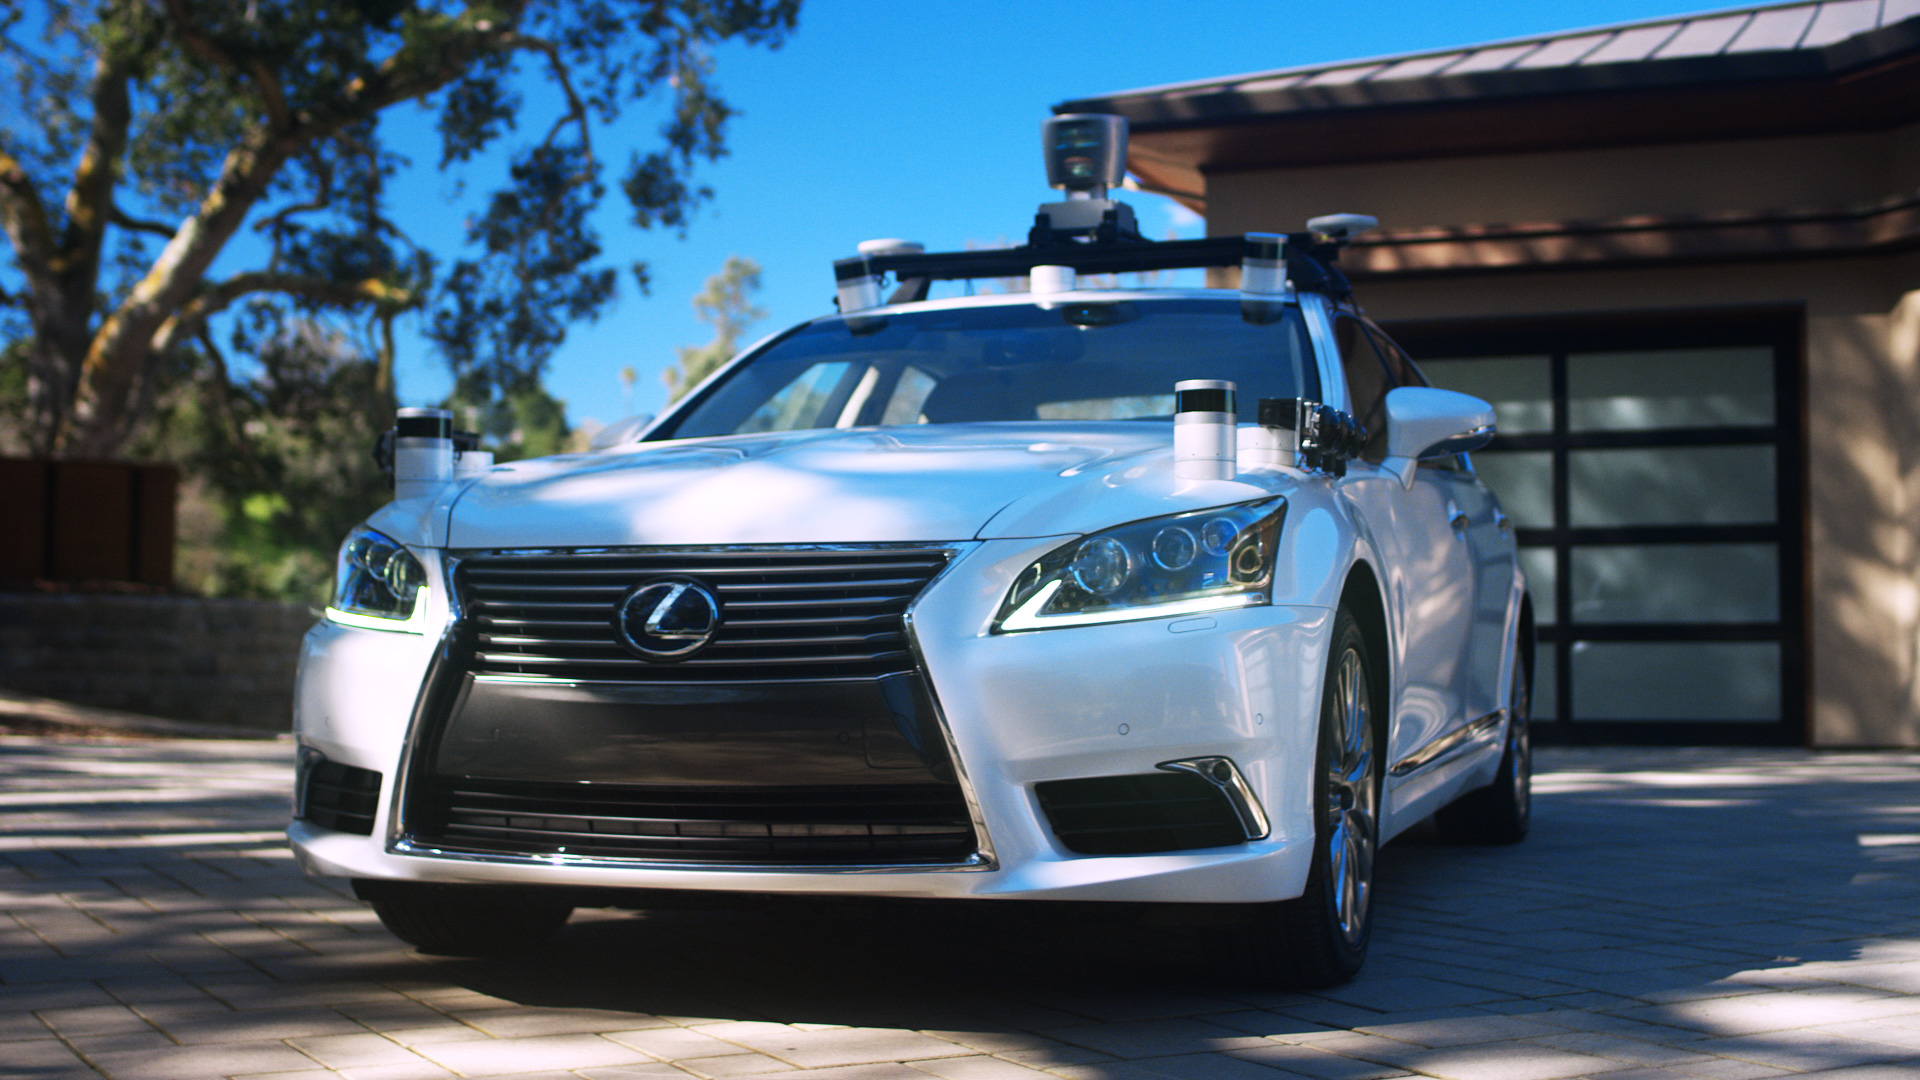 Toyota showcases its new advanced autonomous car platform to Boston robotics community